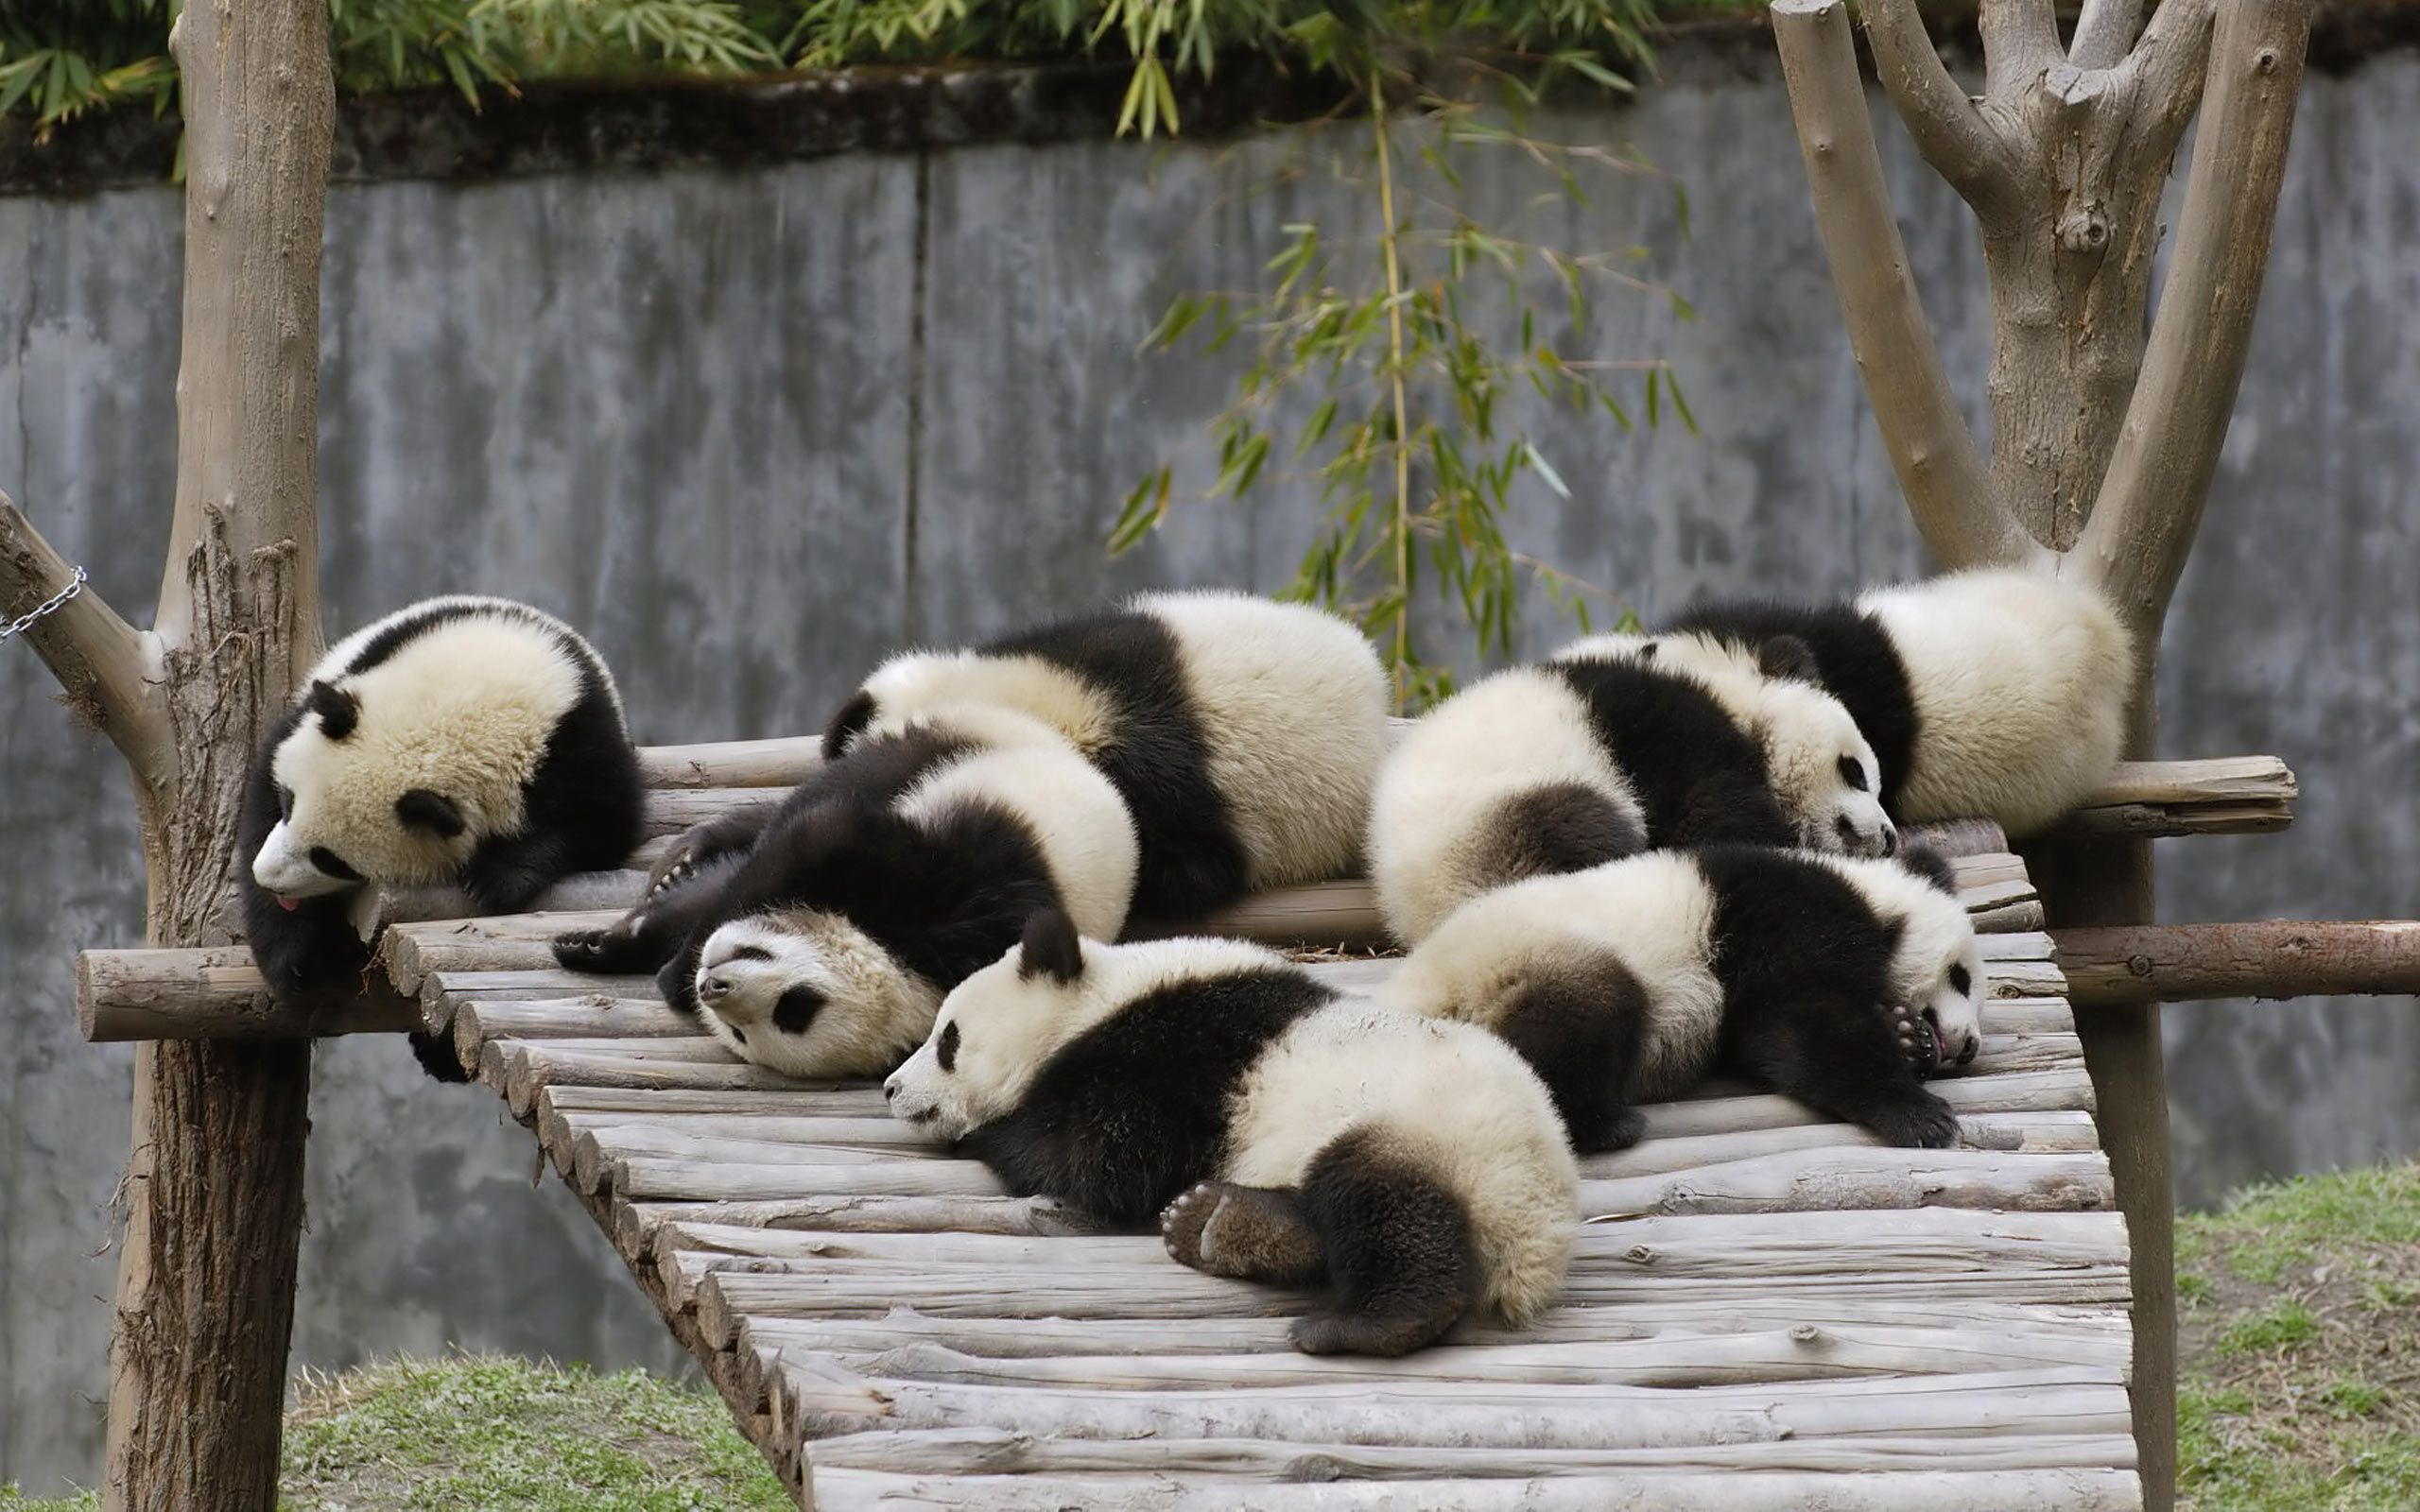 103137 download wallpaper Animals, Lots Of, Multitude, To Lie Down, Lie, Sleep, Dream, Nature, Pandas screensavers and pictures for free